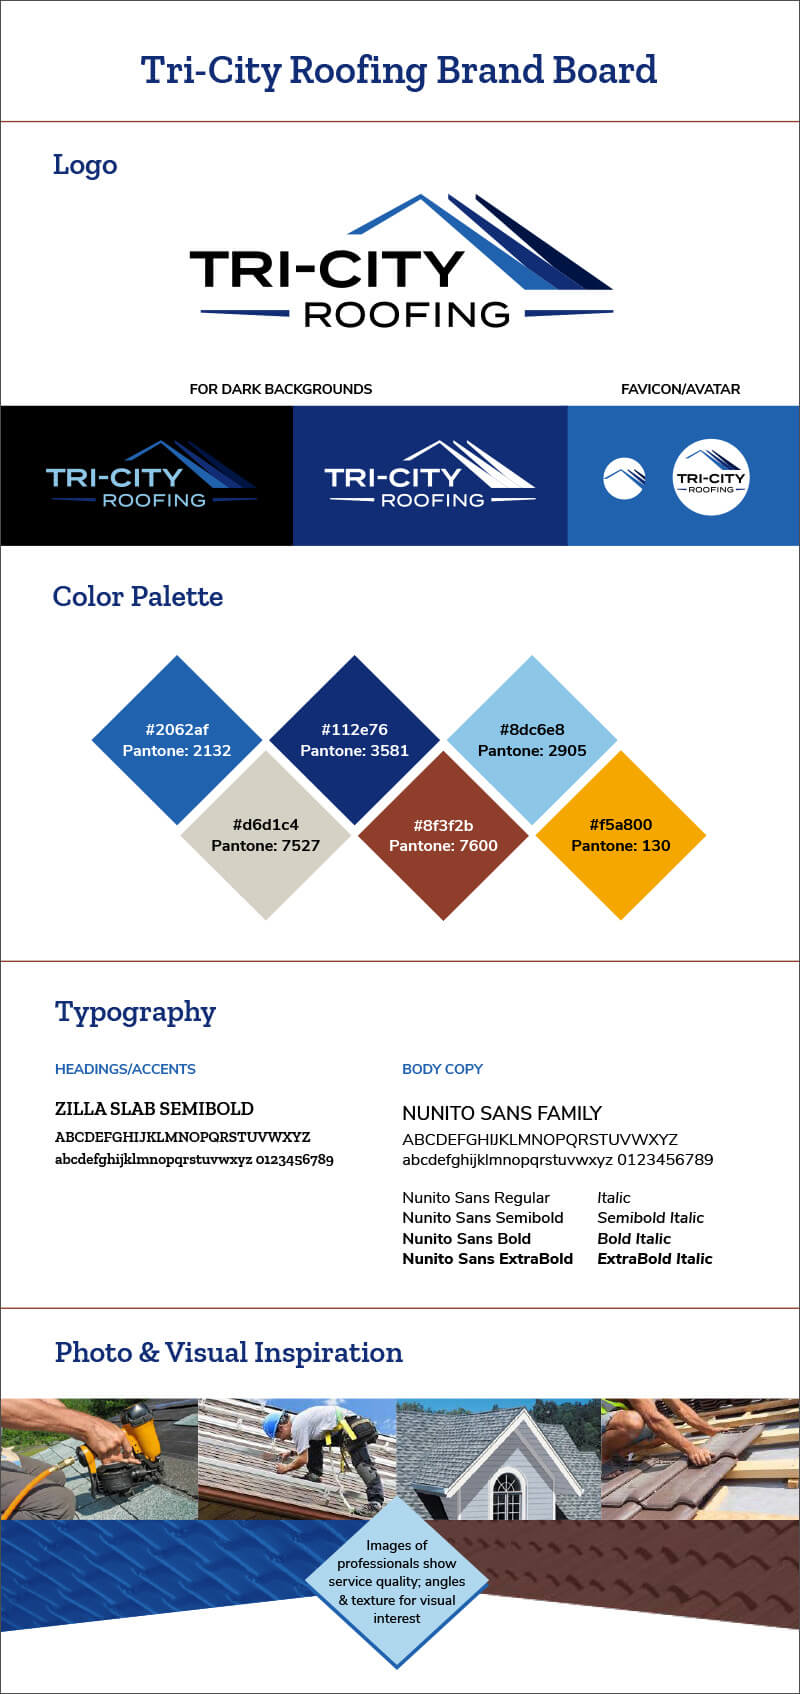 Tri-City Roofing brand board